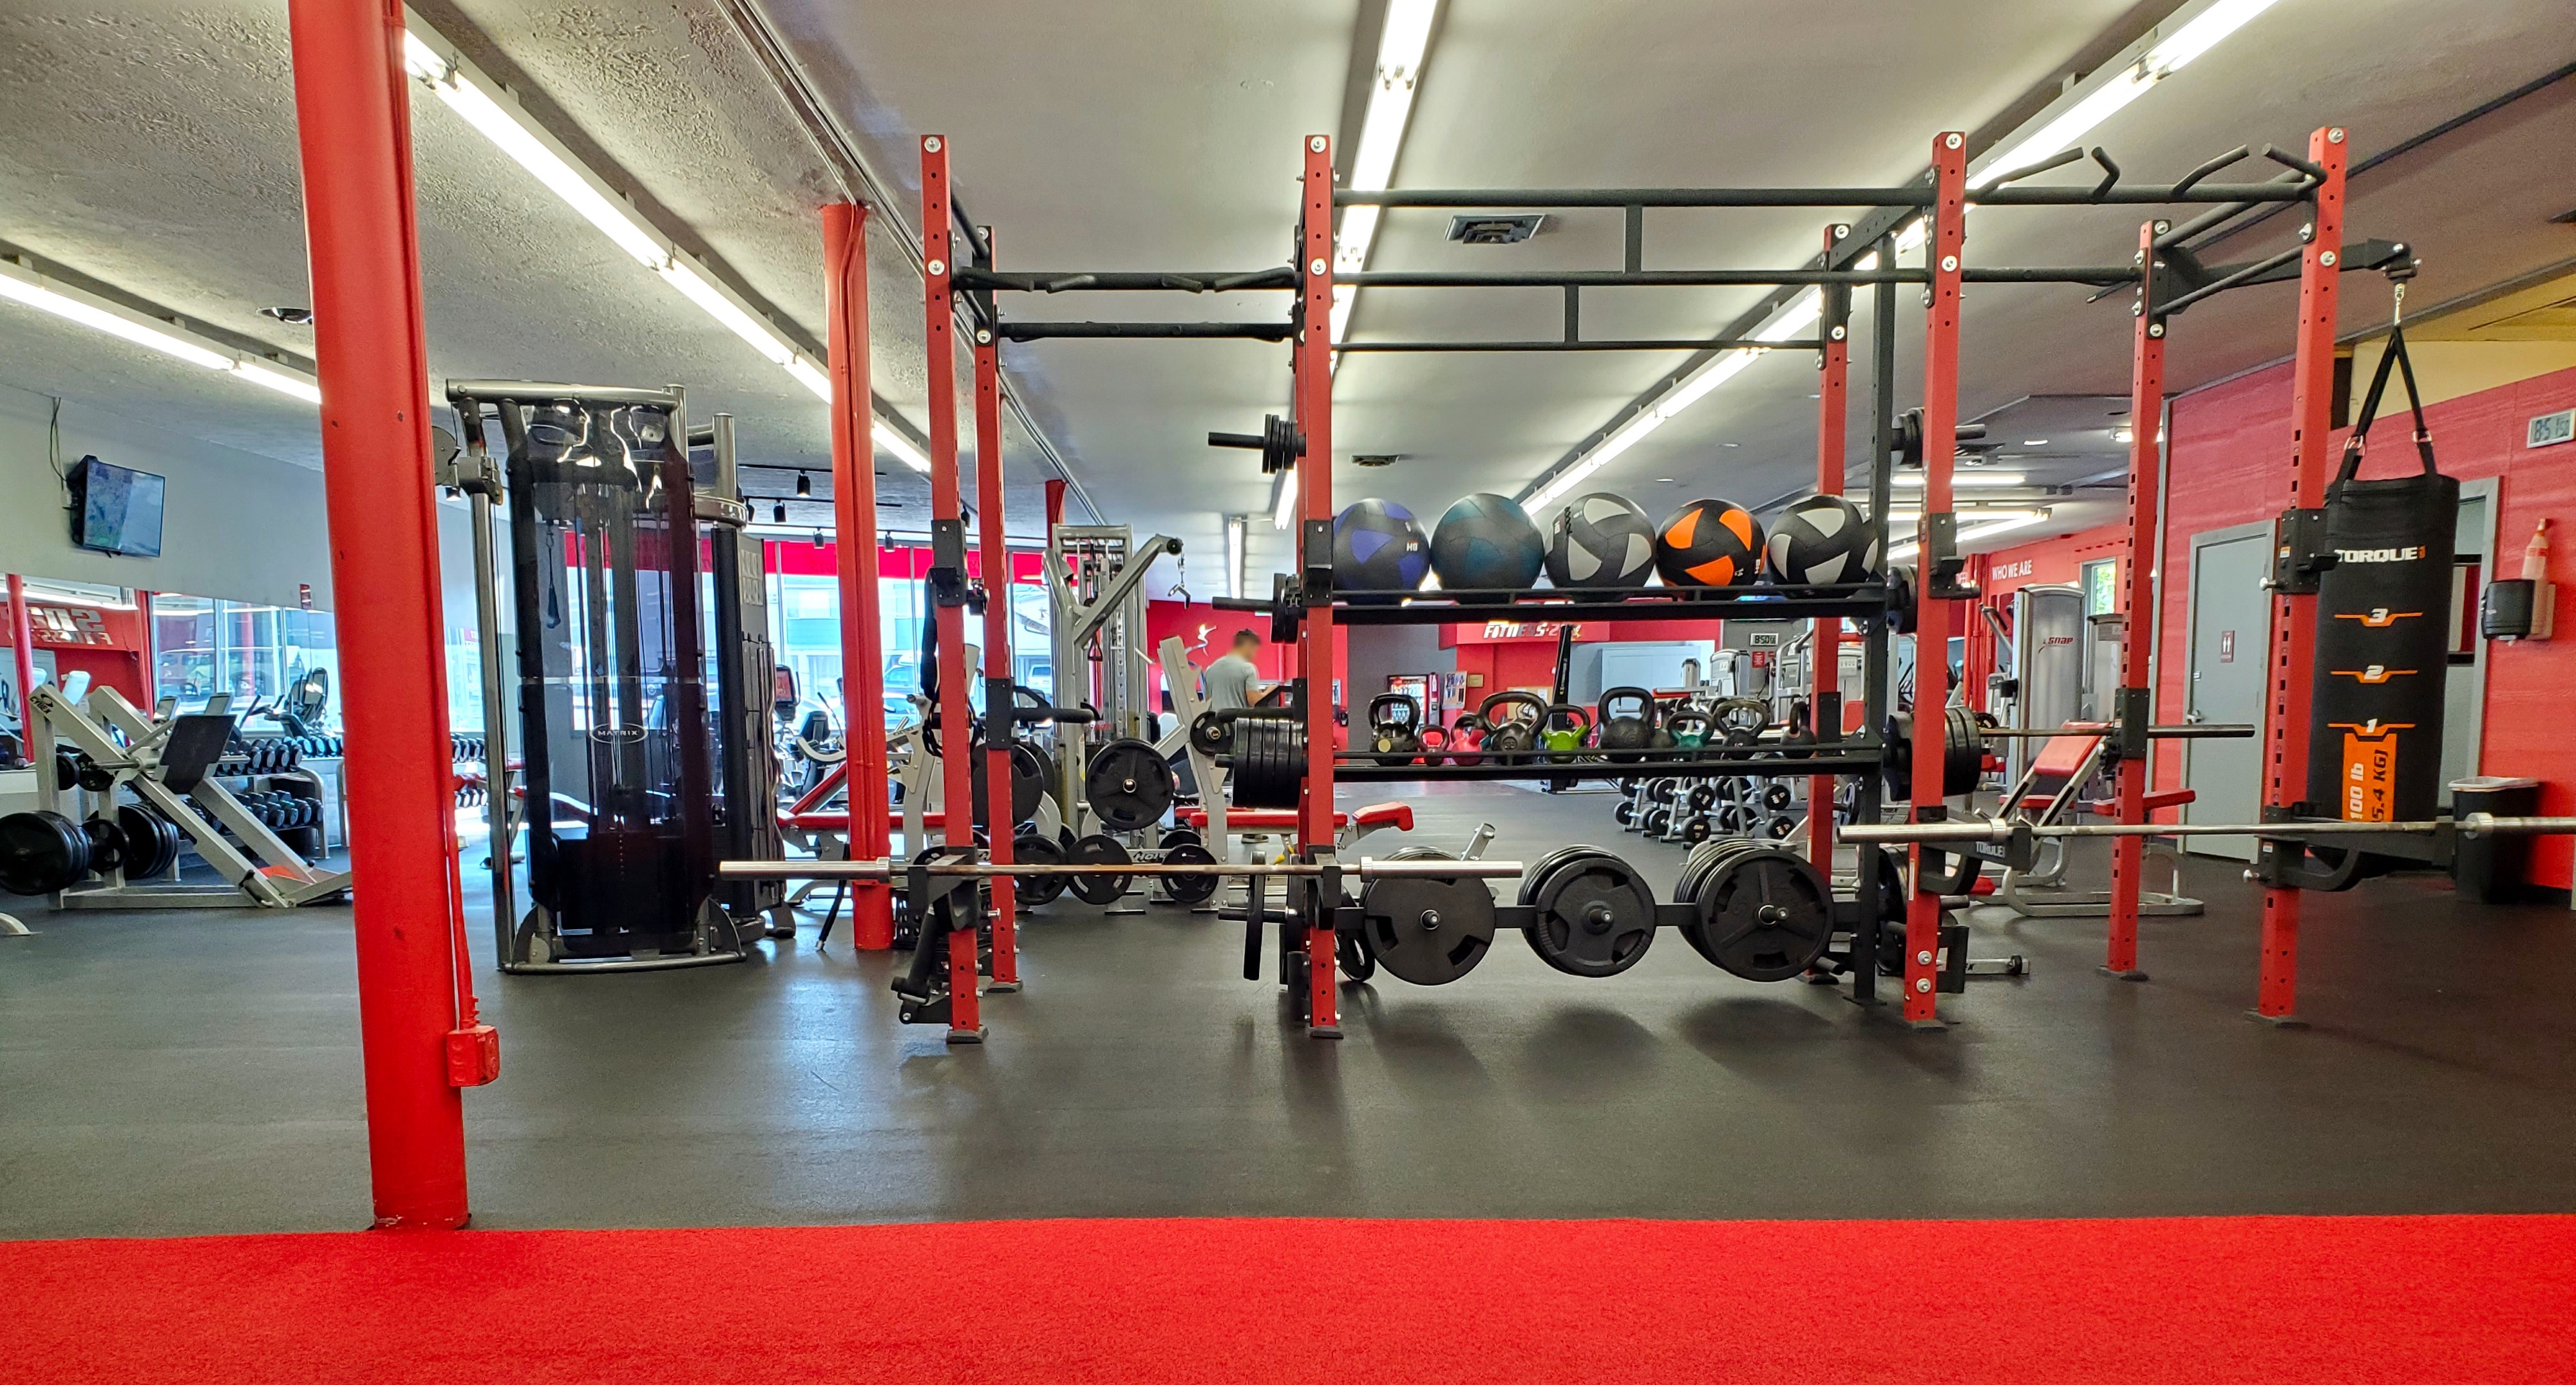 Brightly lit gym with weight equipment and machines.